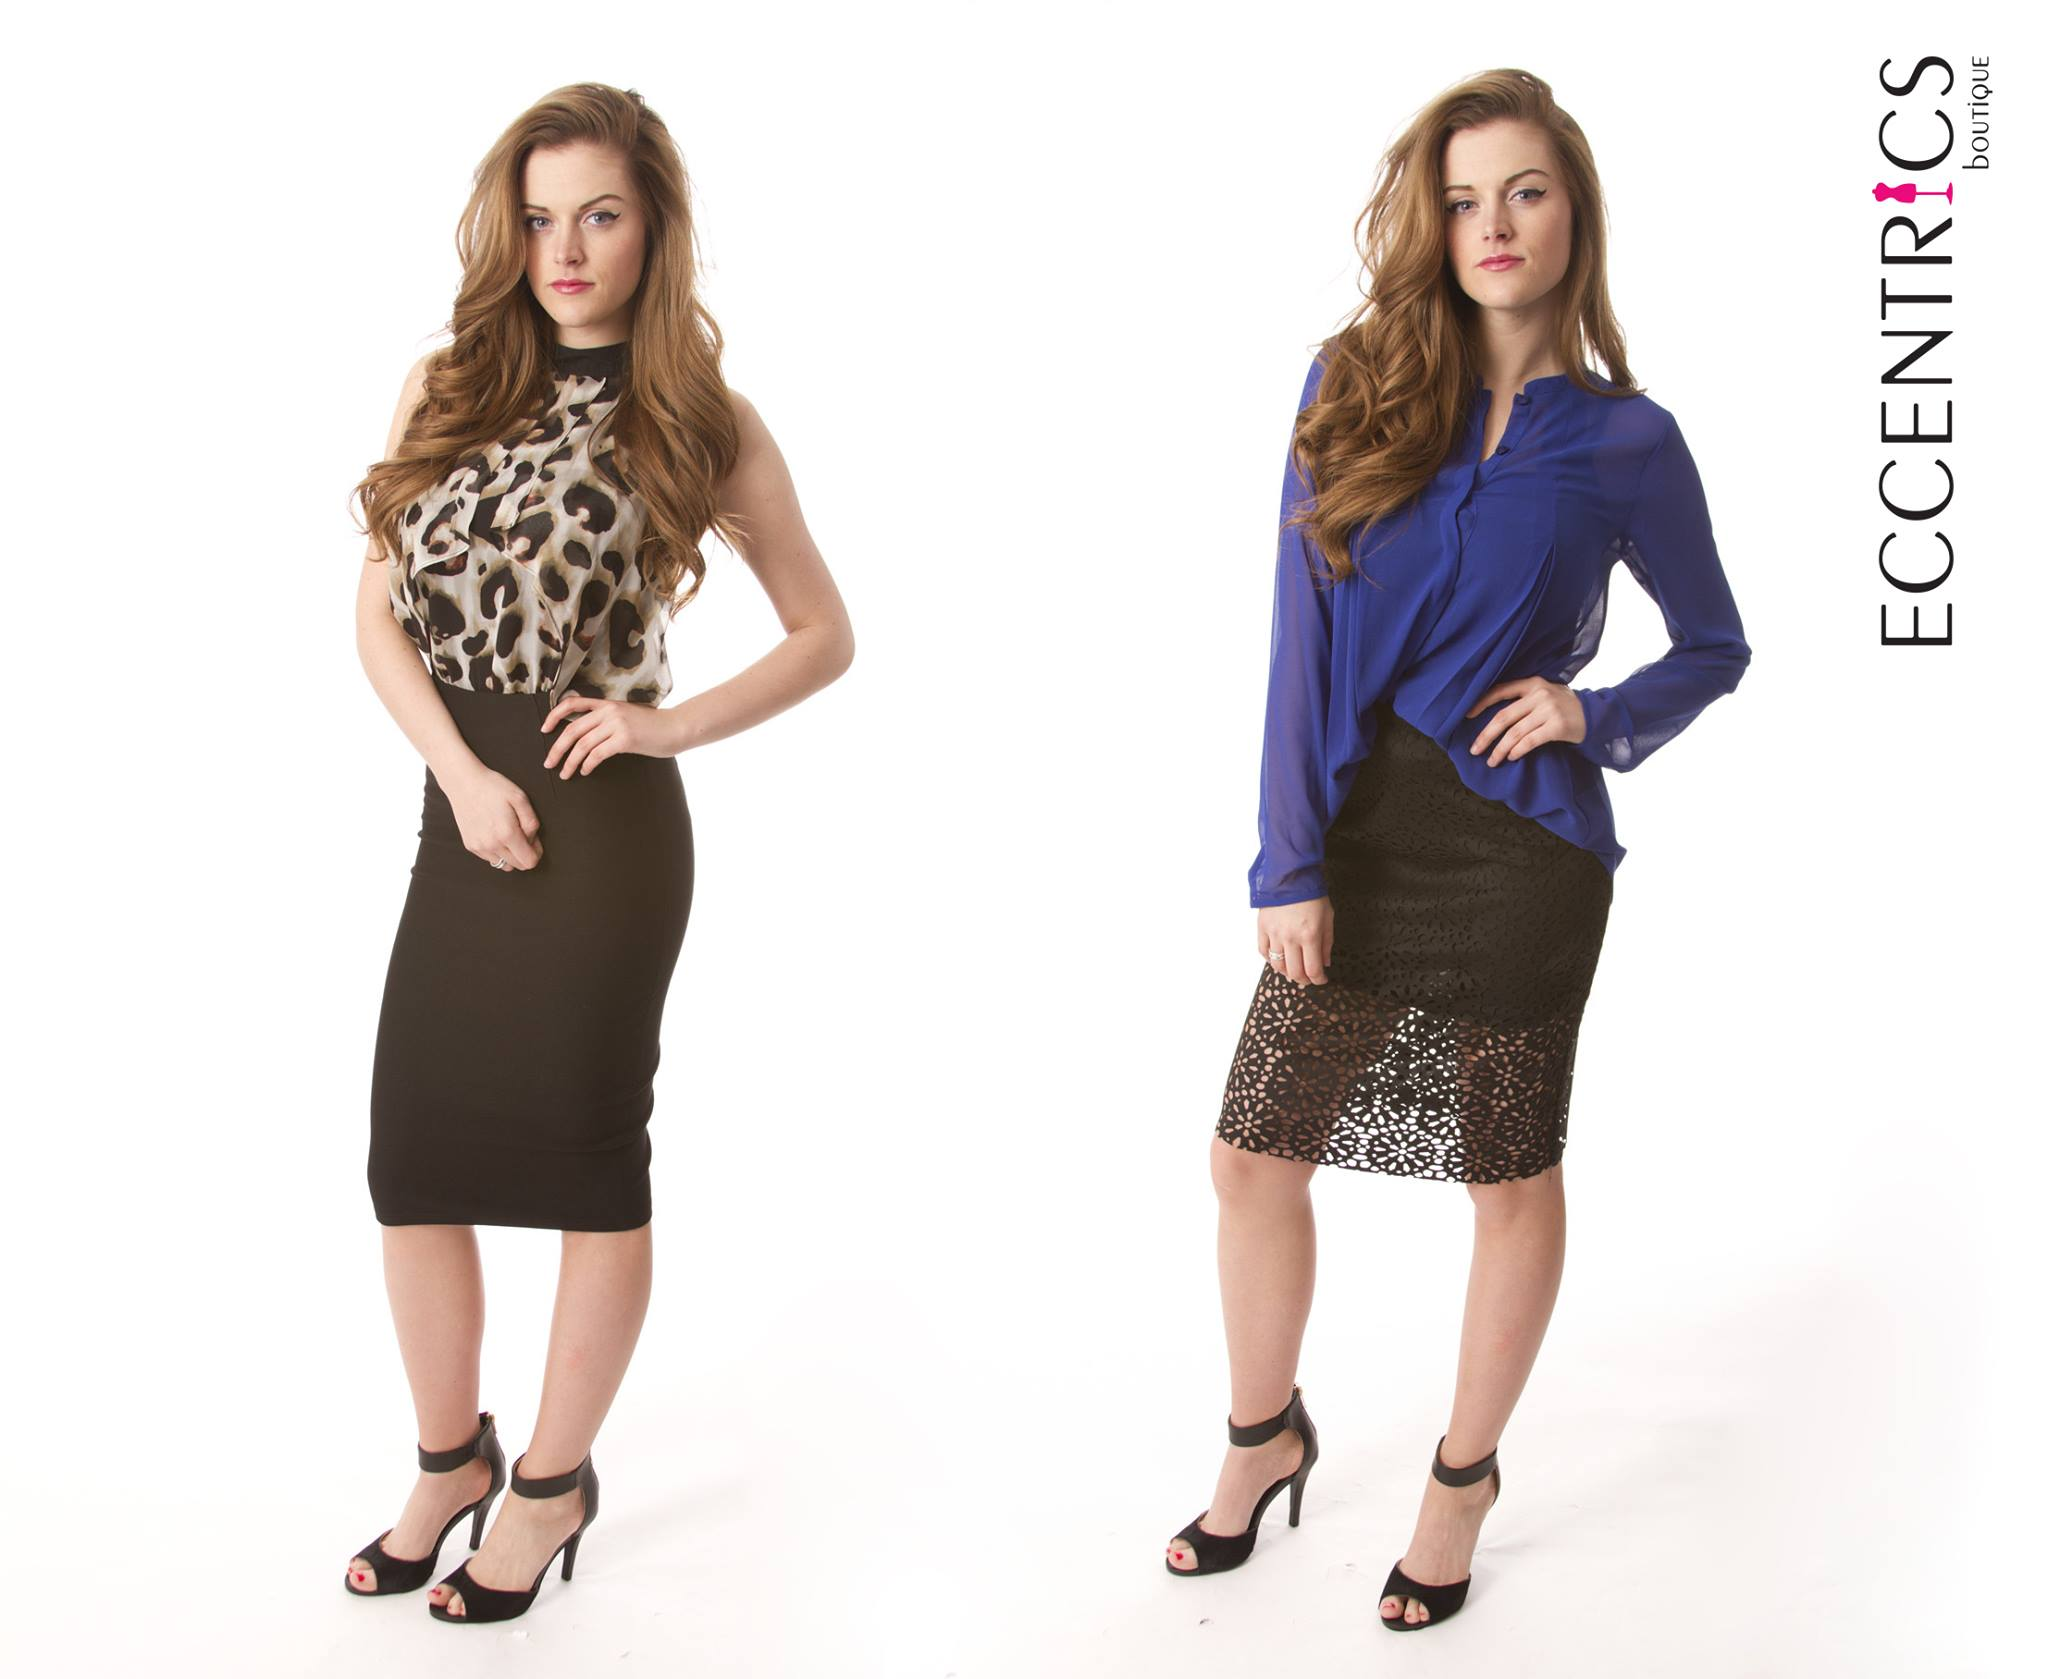 Women's pencil skirts for work wear